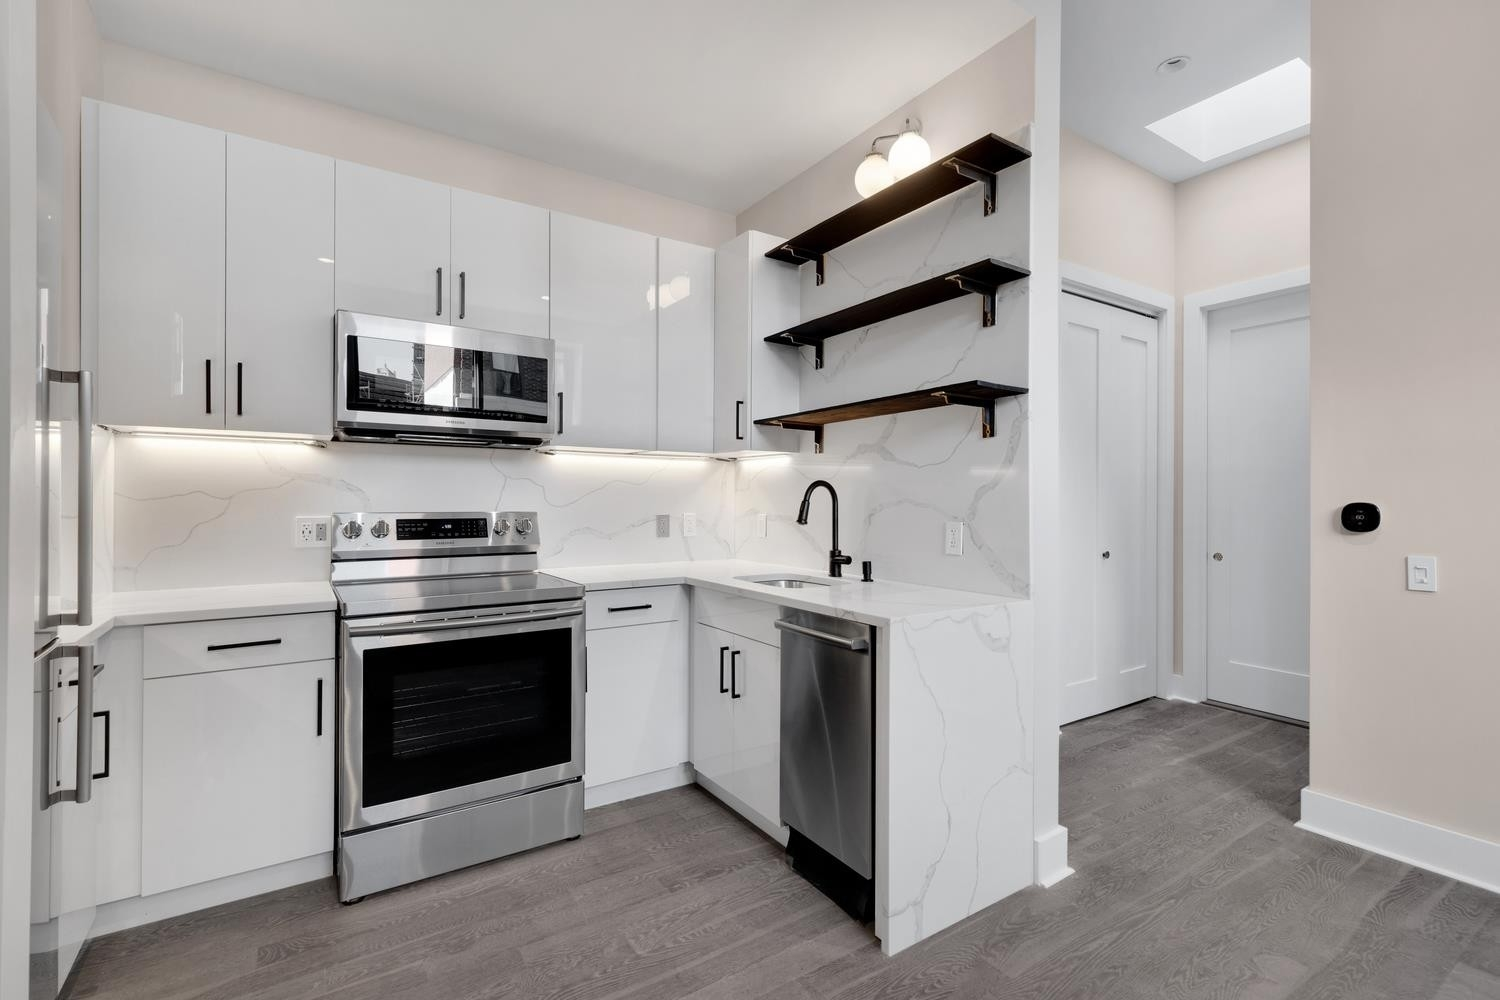 Новая постройка в 32 Fifth Avenue, 1A Brooklyn